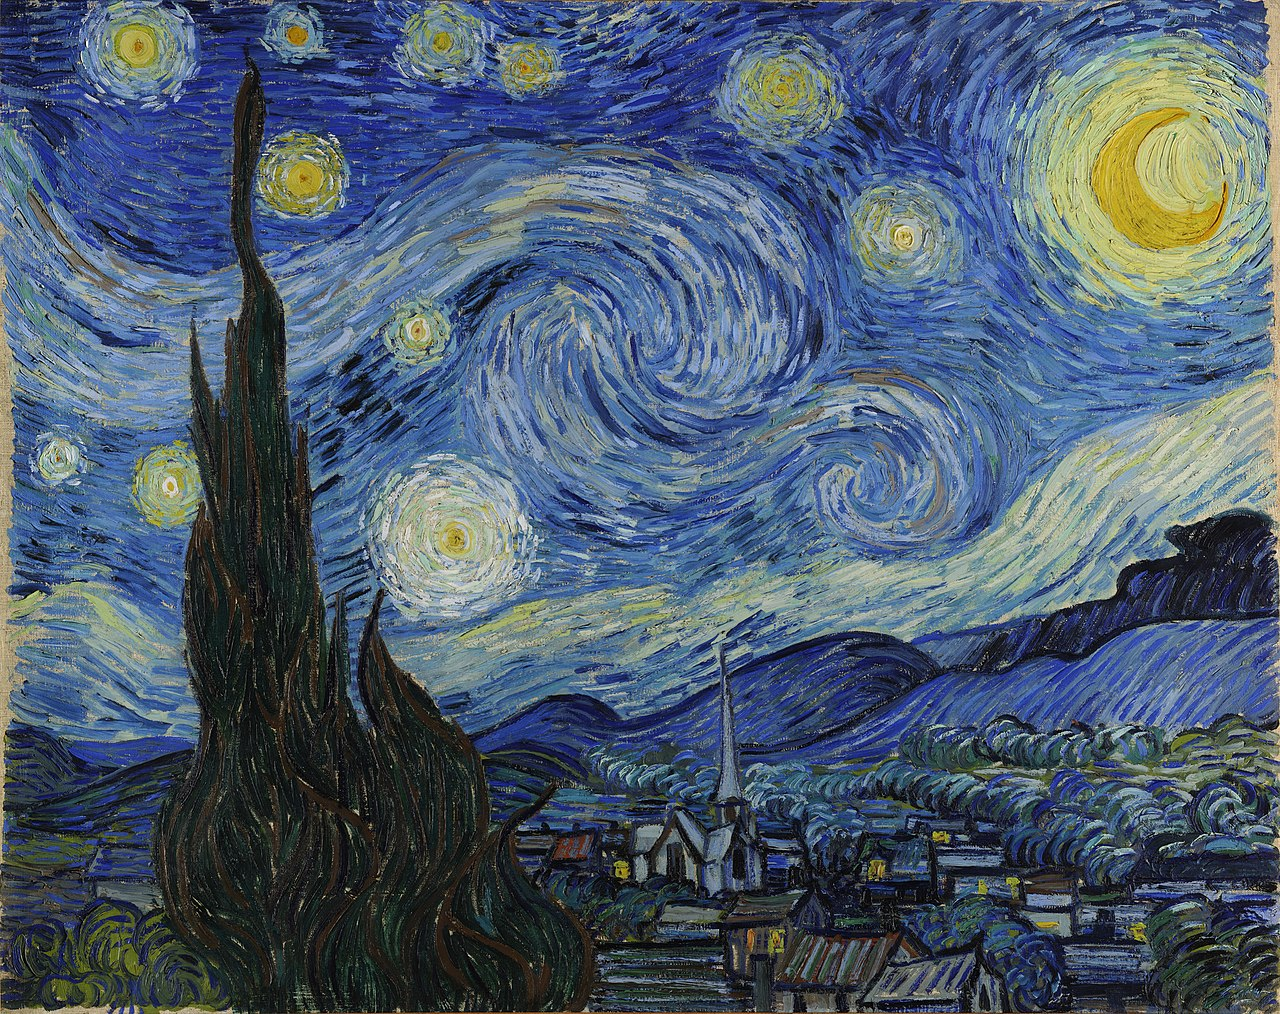 circuitpython_1280px-Van_Gogh_-_Starry_Night_-_Google_Art_Project.jpg